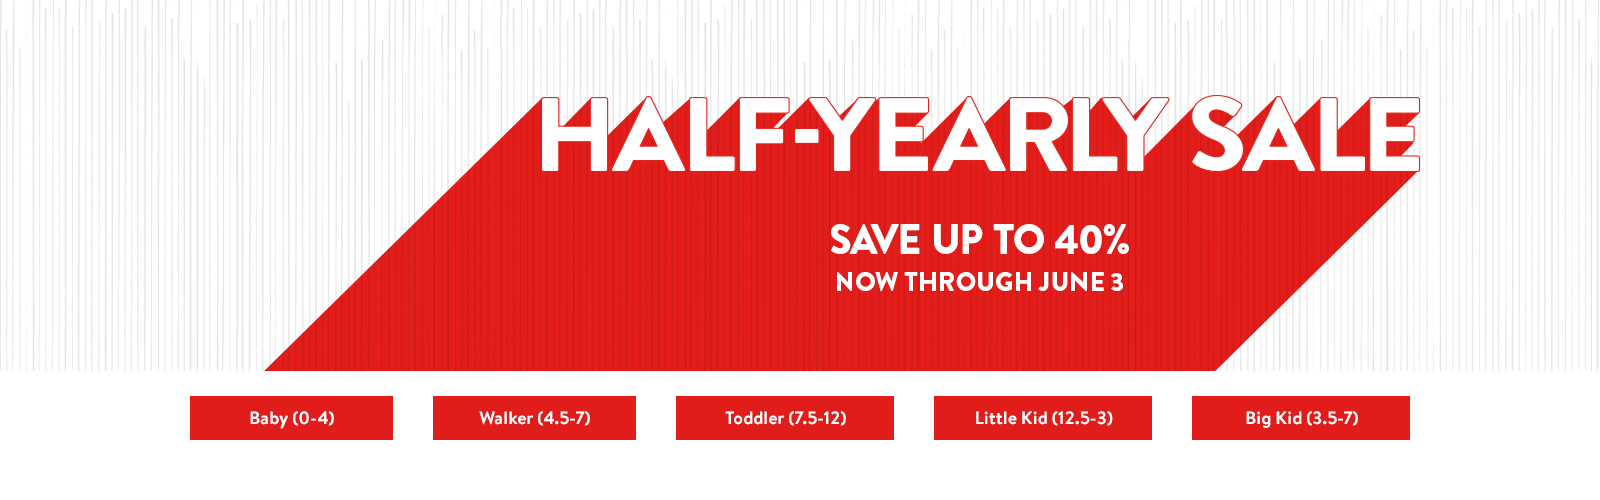 Half-Yearly Sale. Save up to 40% through June 3. Shop kids' sale shoes by size.